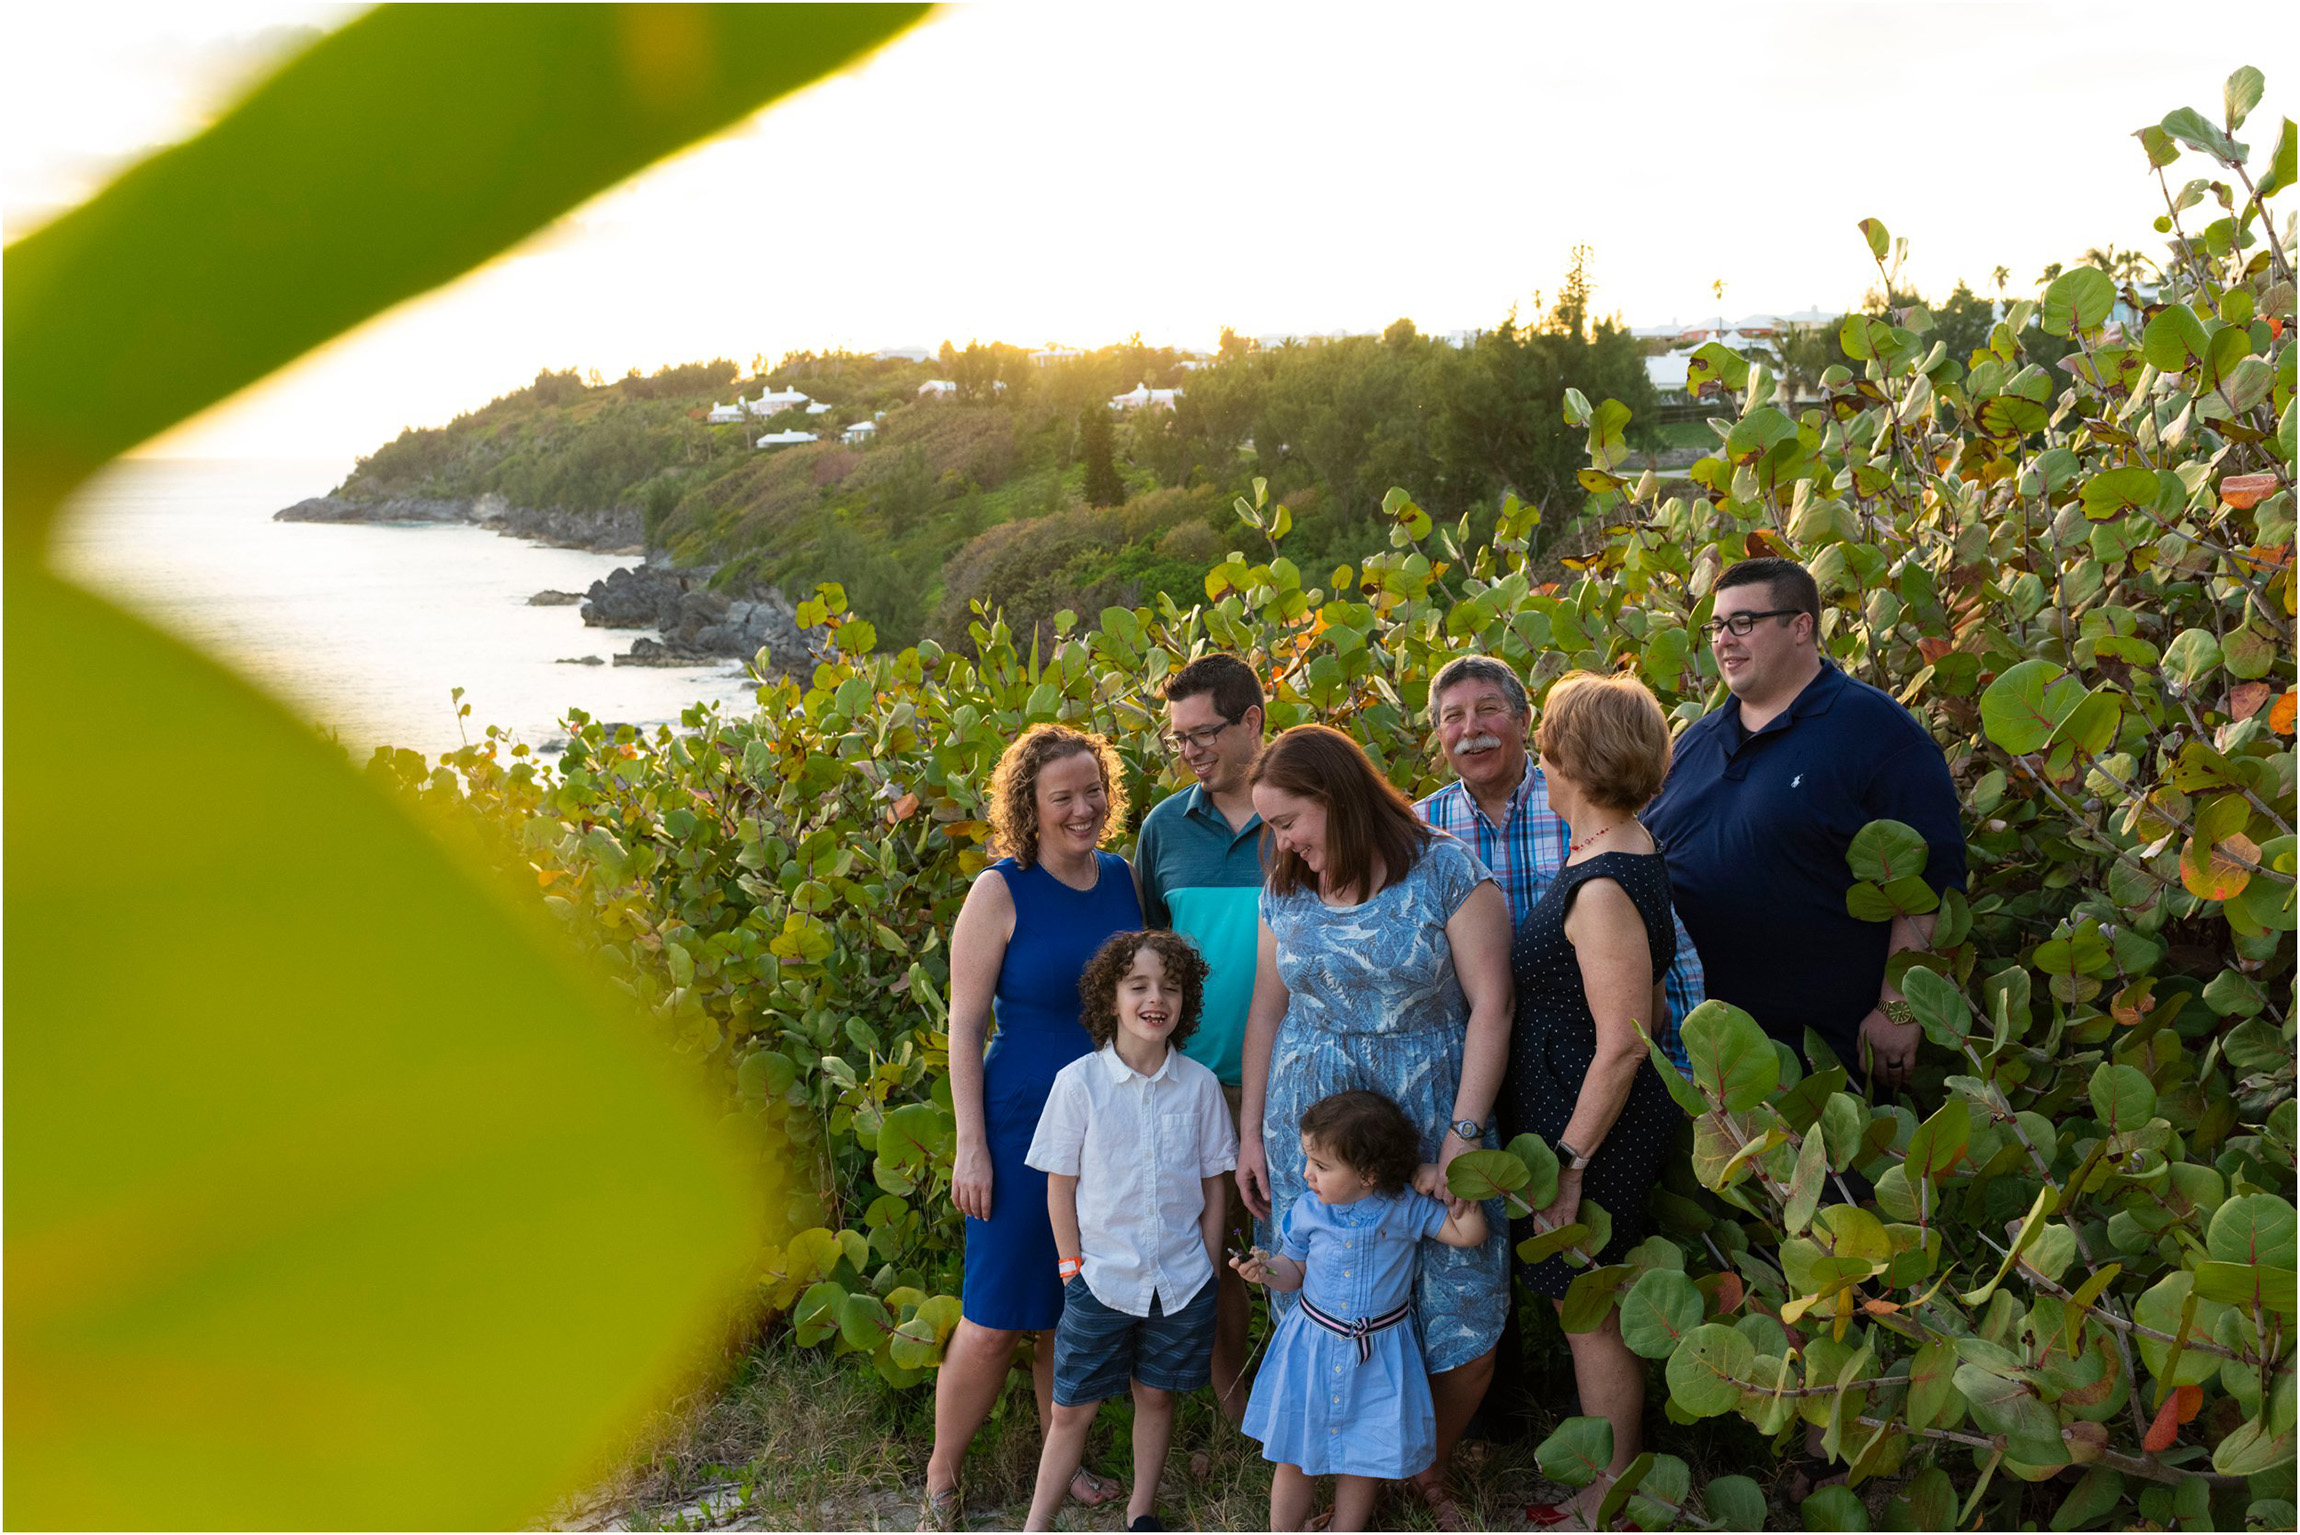 ©FianderFoto_Bermuda Photographer_Church Bay Park_Ashley_Family_014.jpg